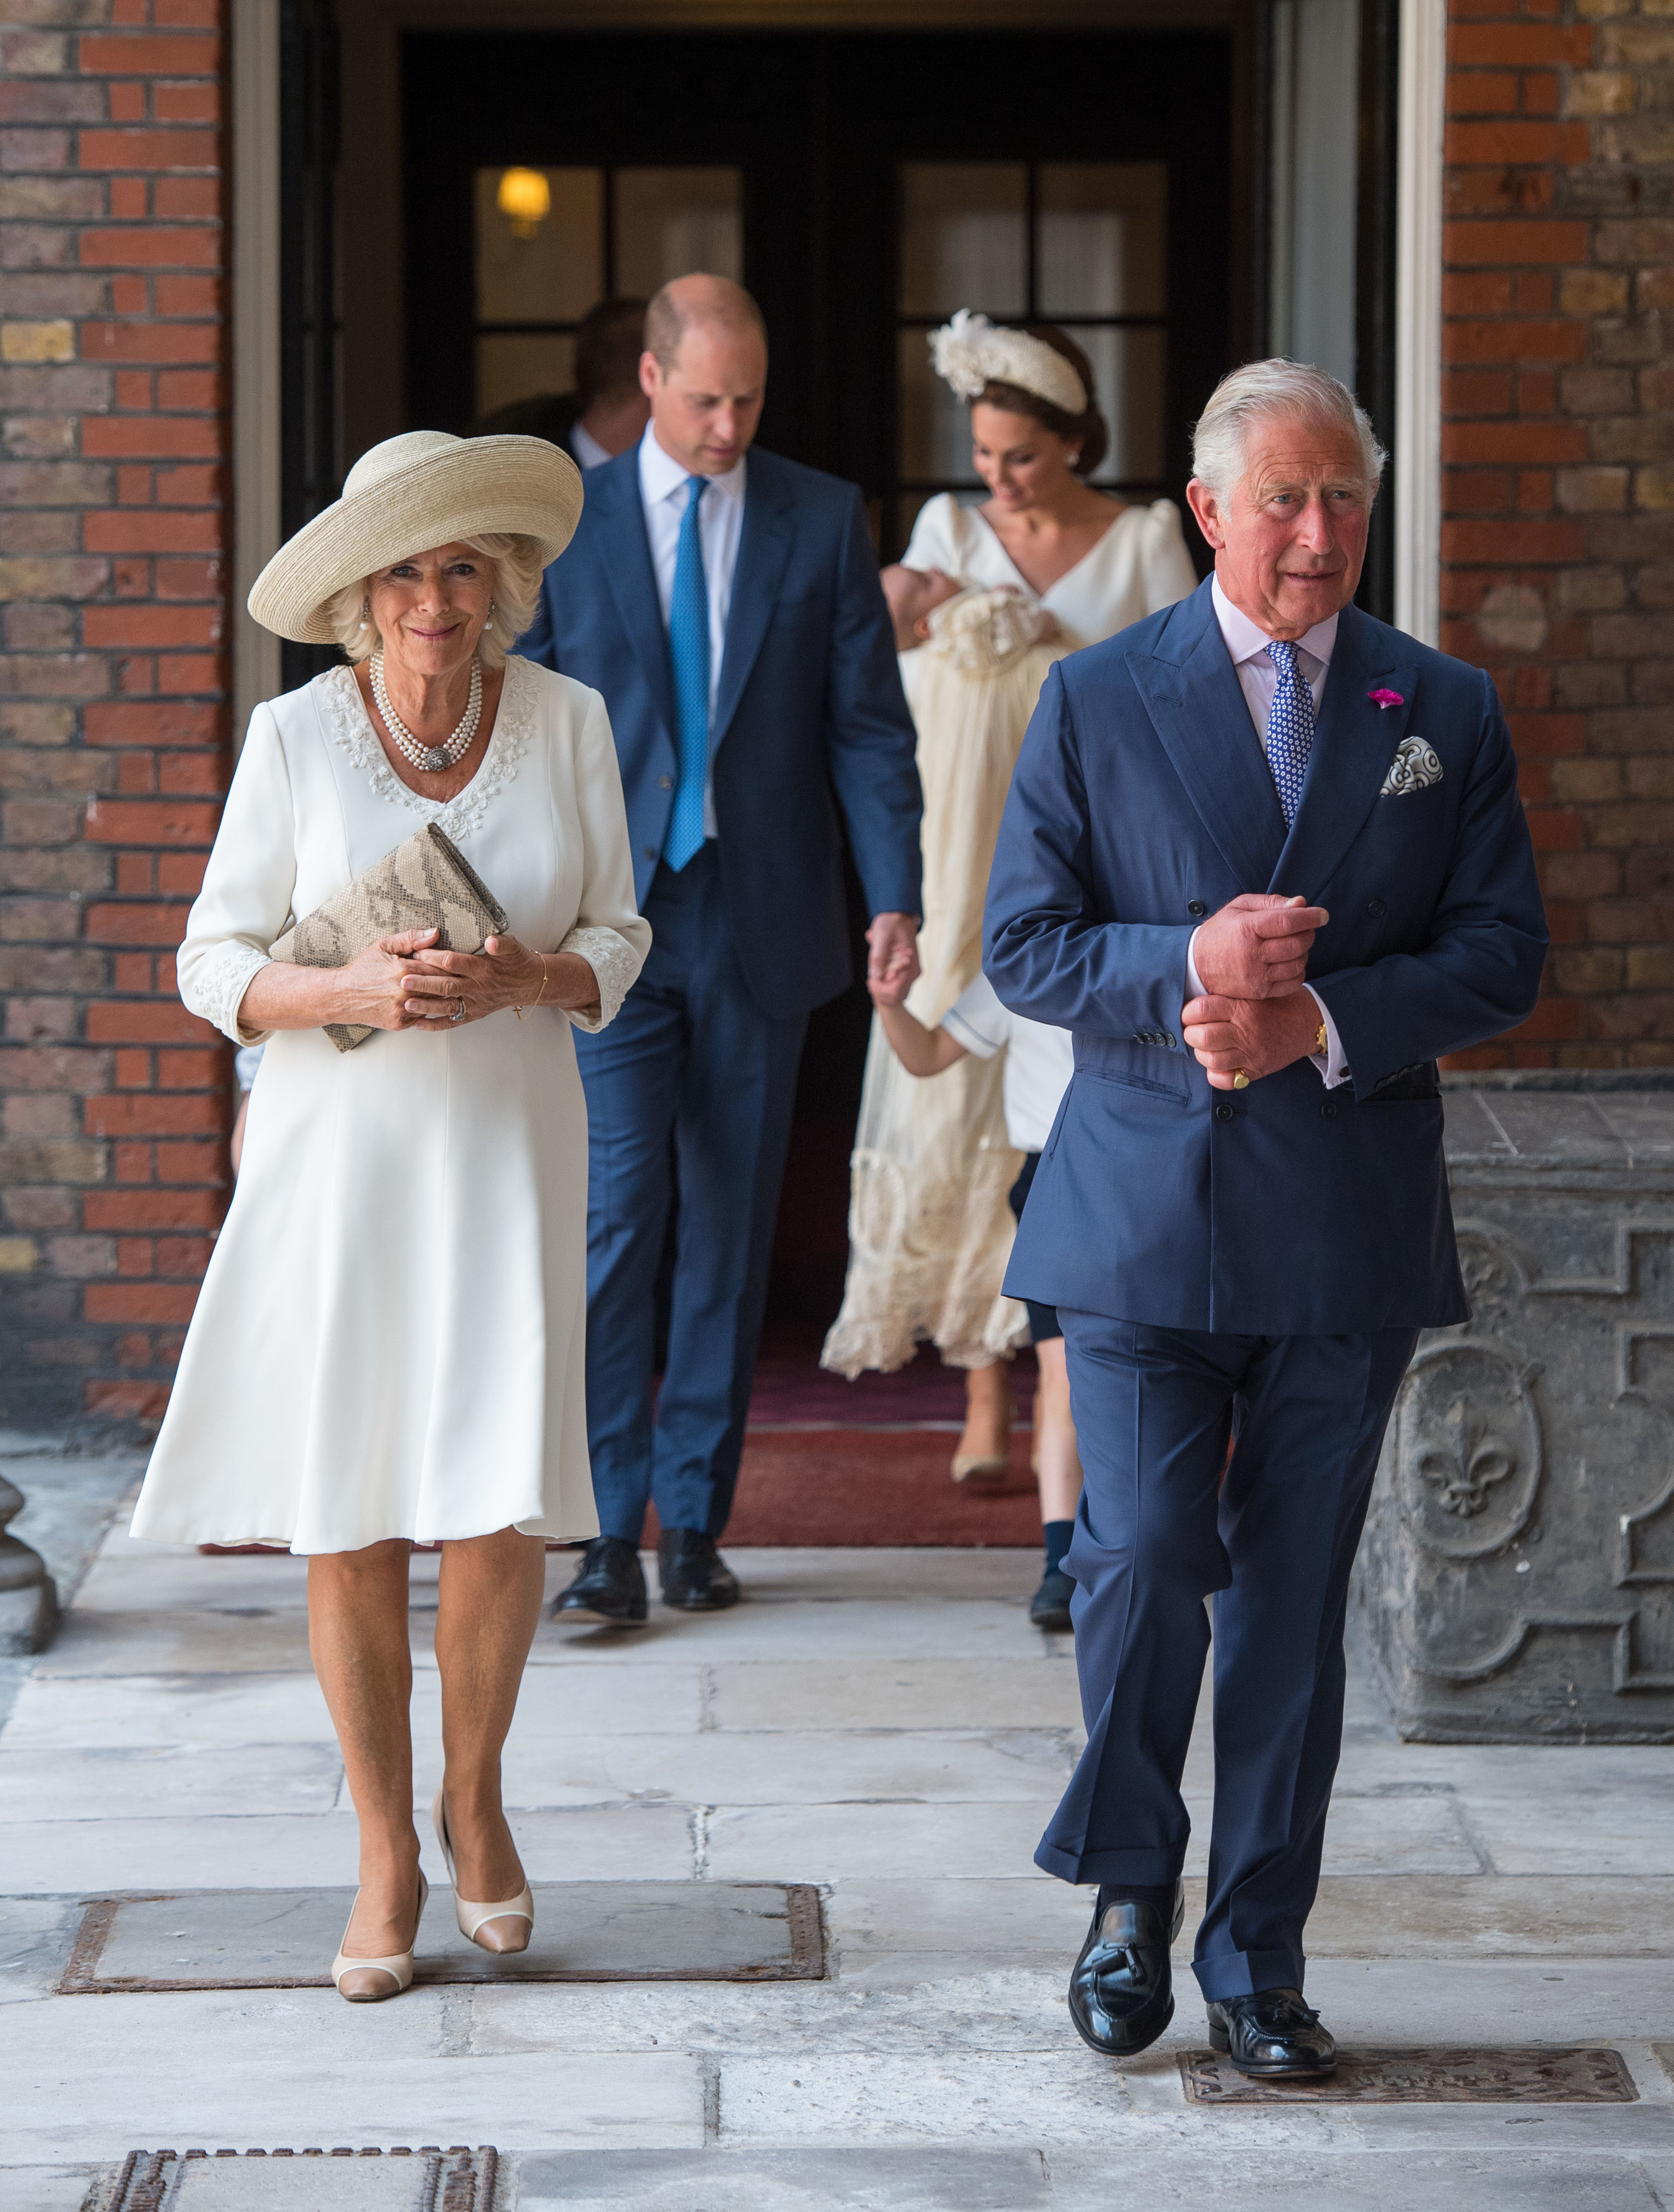 Britain's Prince Charles, Prince of Wales (R) and Britain's Camilla, Duchess of Cornwall attend the christening of Prince Louis at the Chapel Royal, St James's Palace on July 09, 2018 in London, England.